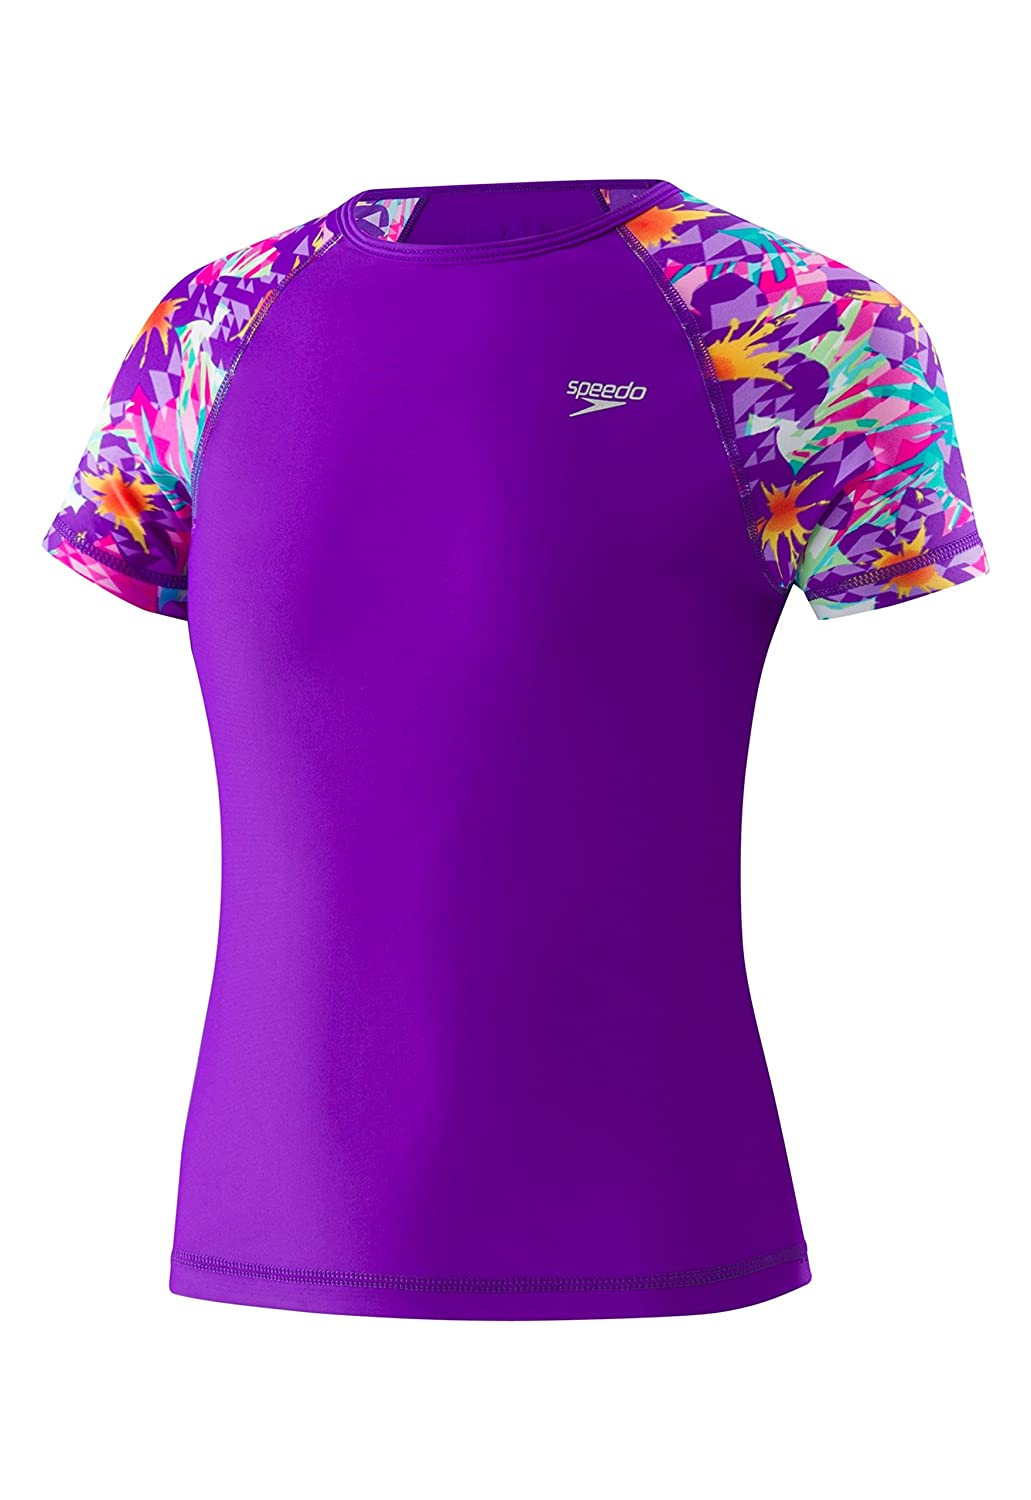 Speedo Girls Printed Short Sleeve Rash Guard Shirt 7714724-P